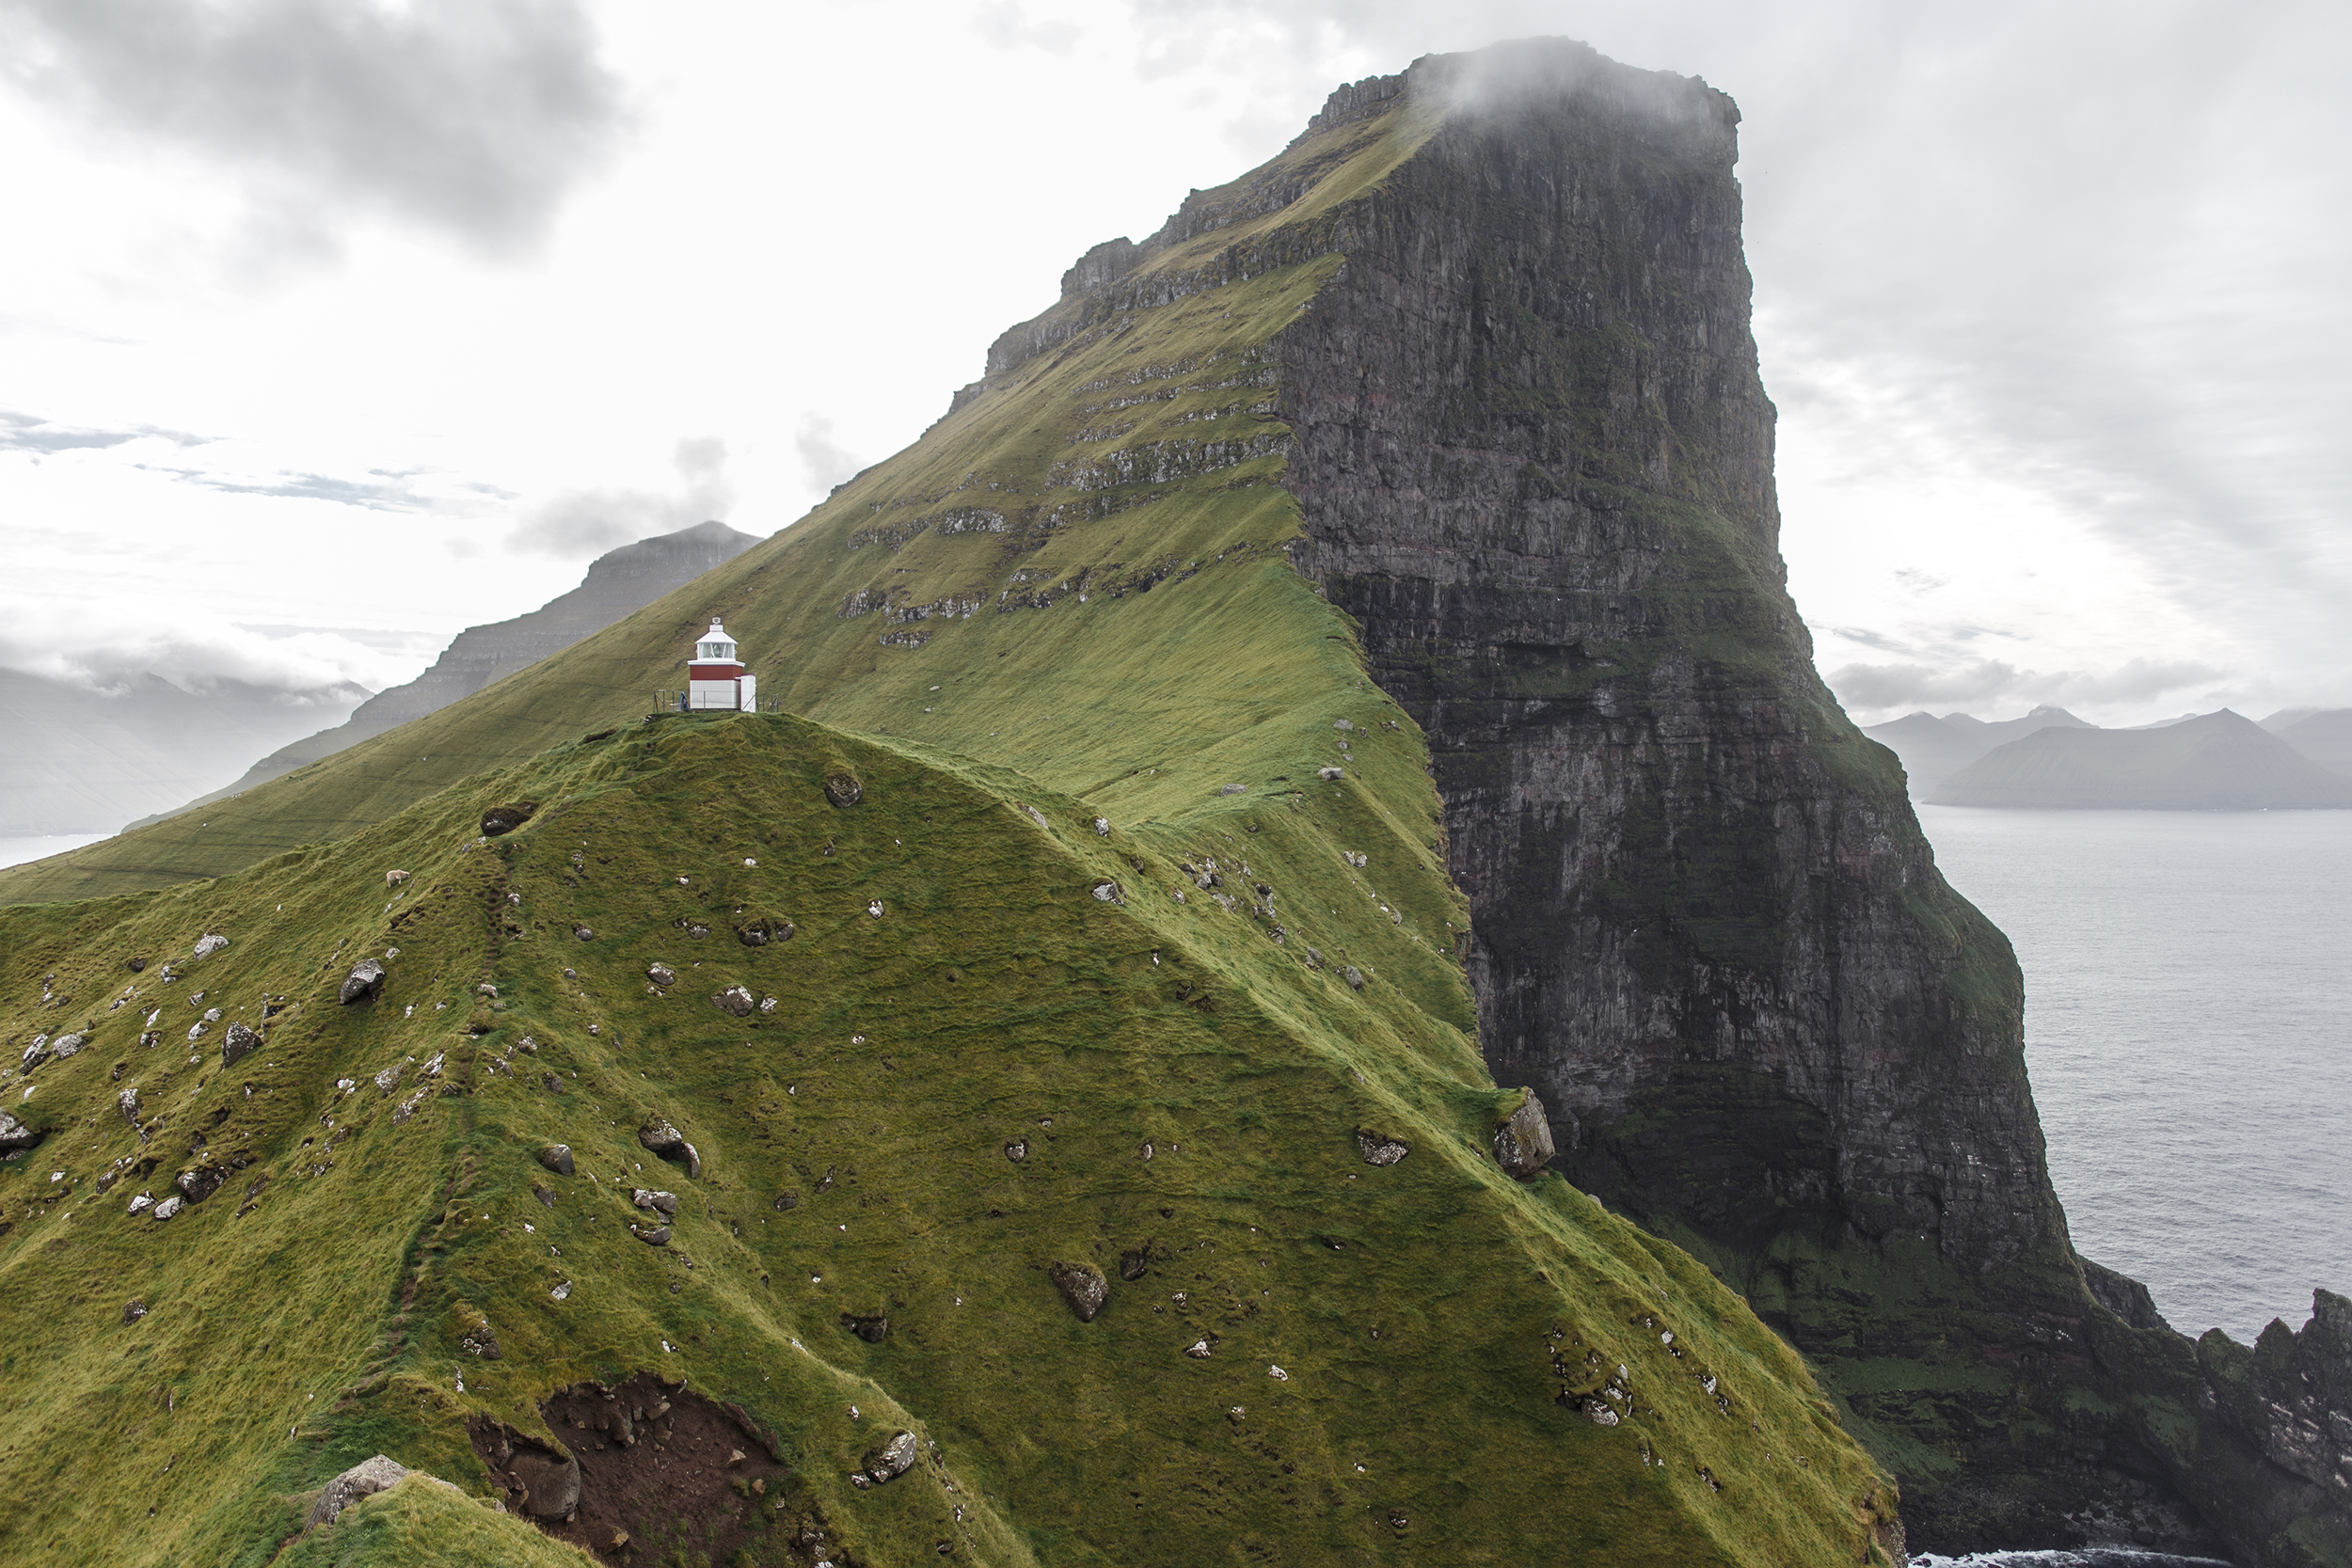 Kallur Lighthouse on Kalsoy island in the Faroe Islands